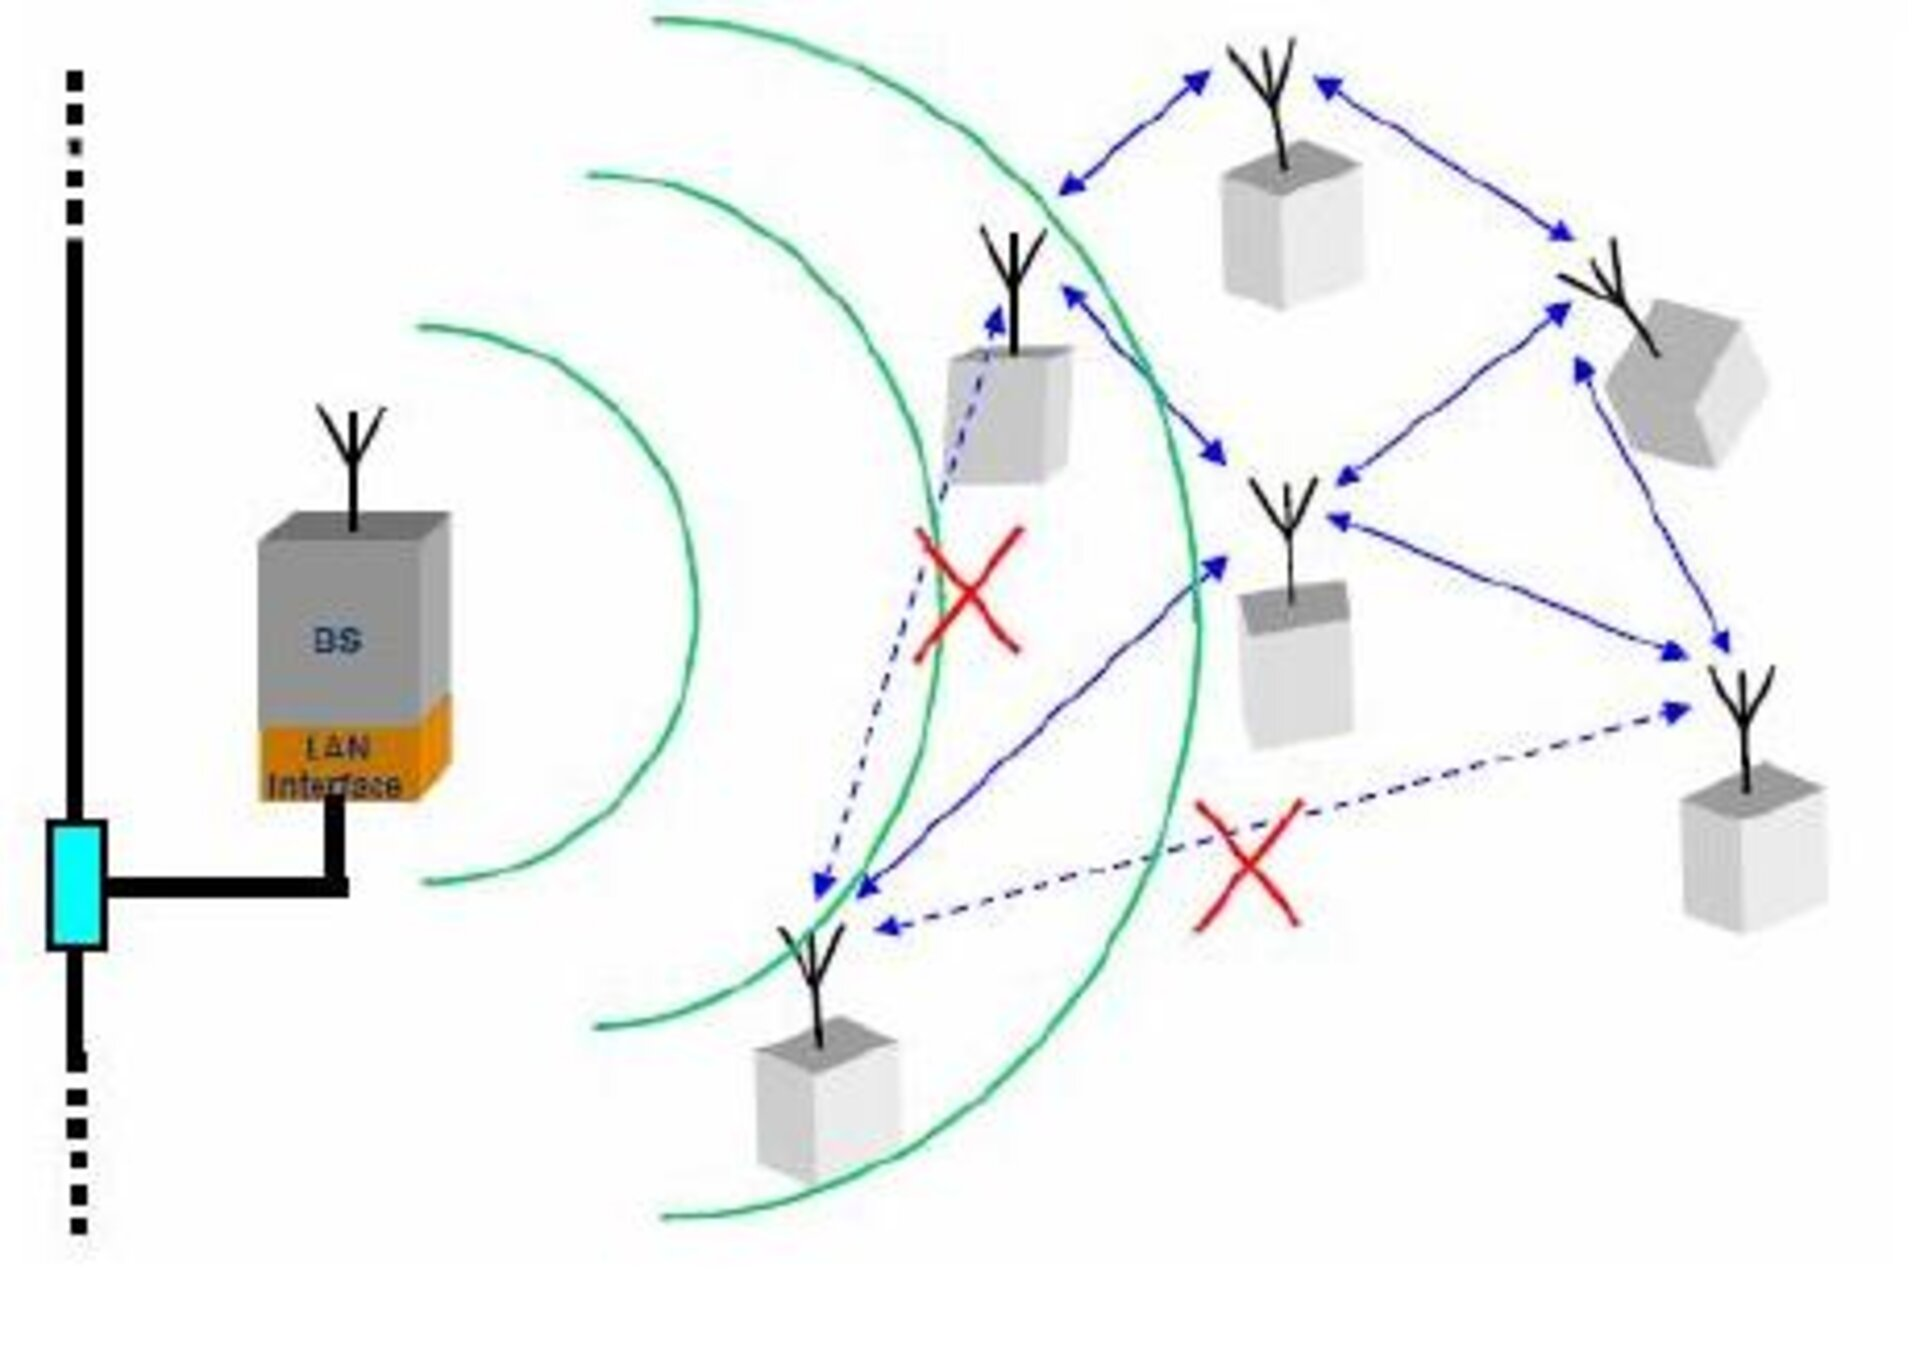 Microsensors forming a wireless proximity network